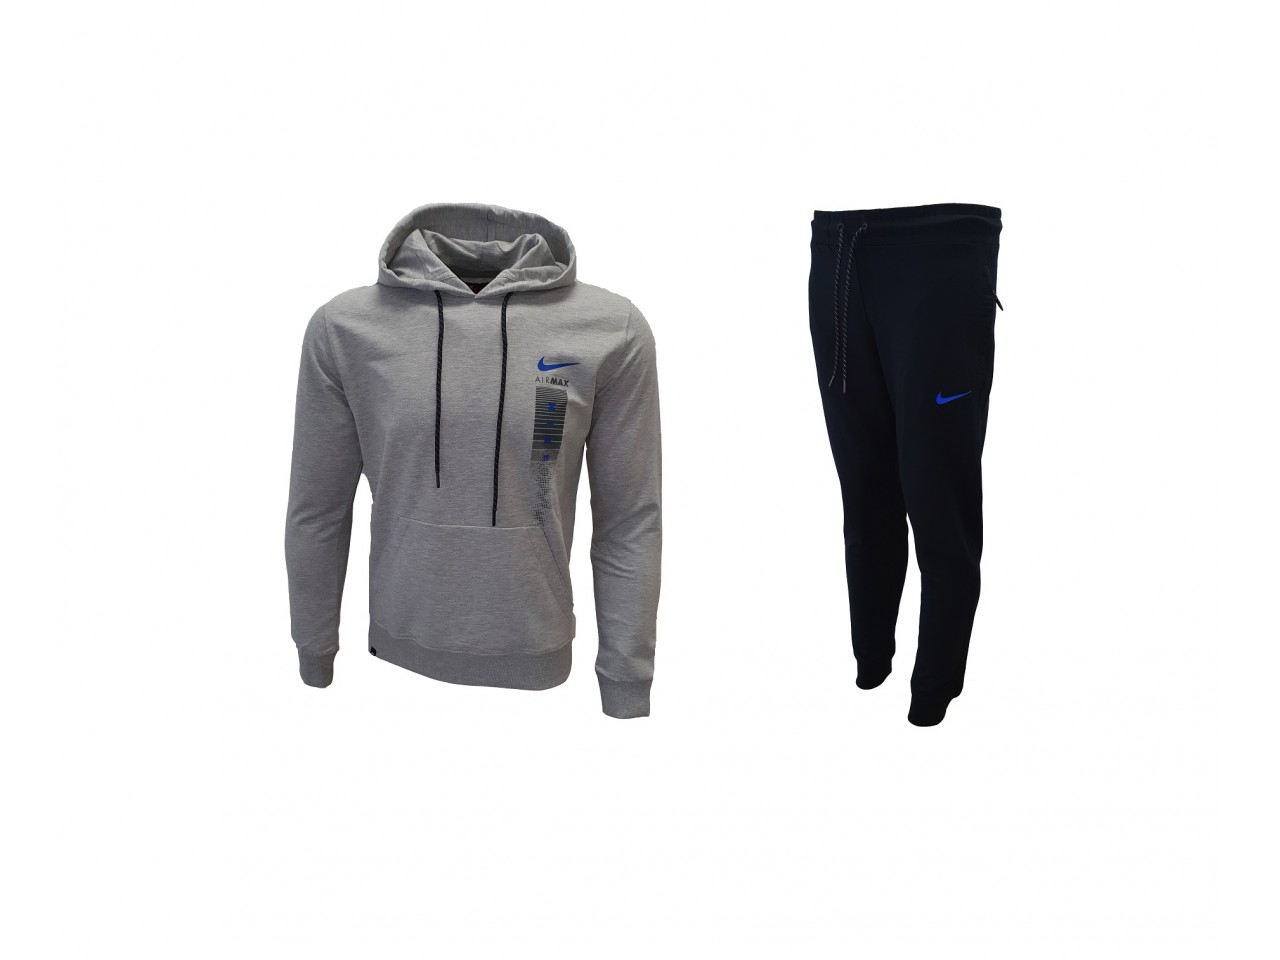 Nike AIRMAX Sweatshirt + Pants Light Grey Dark Blue